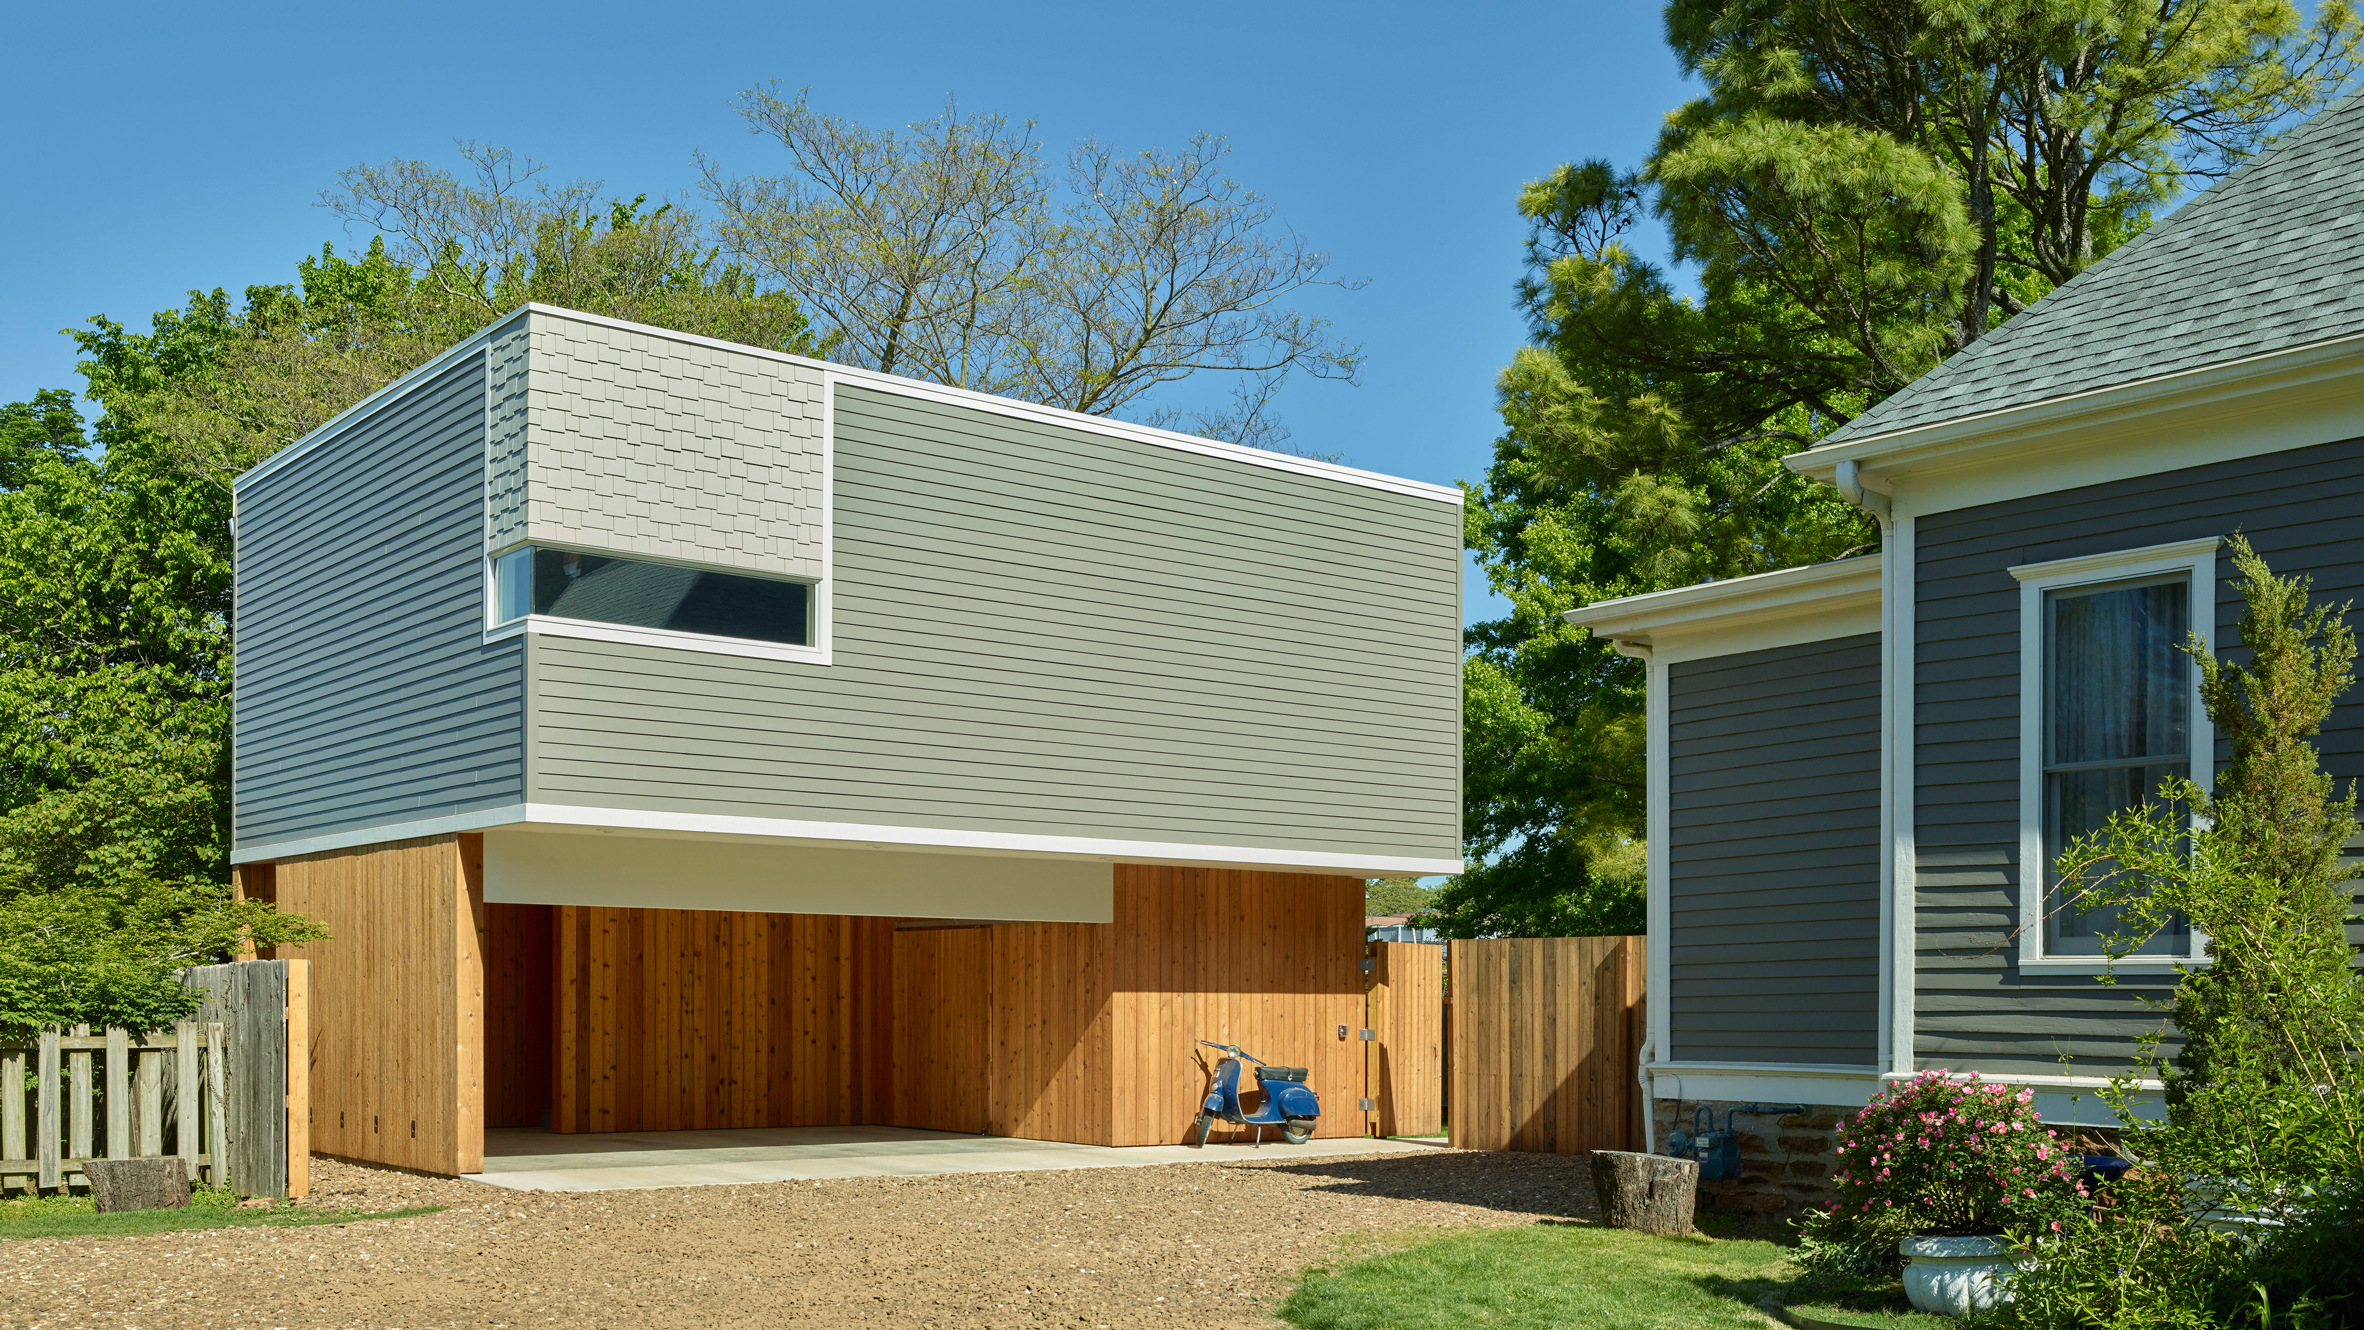 Werner carriage house demx architecture usa arkansas residential